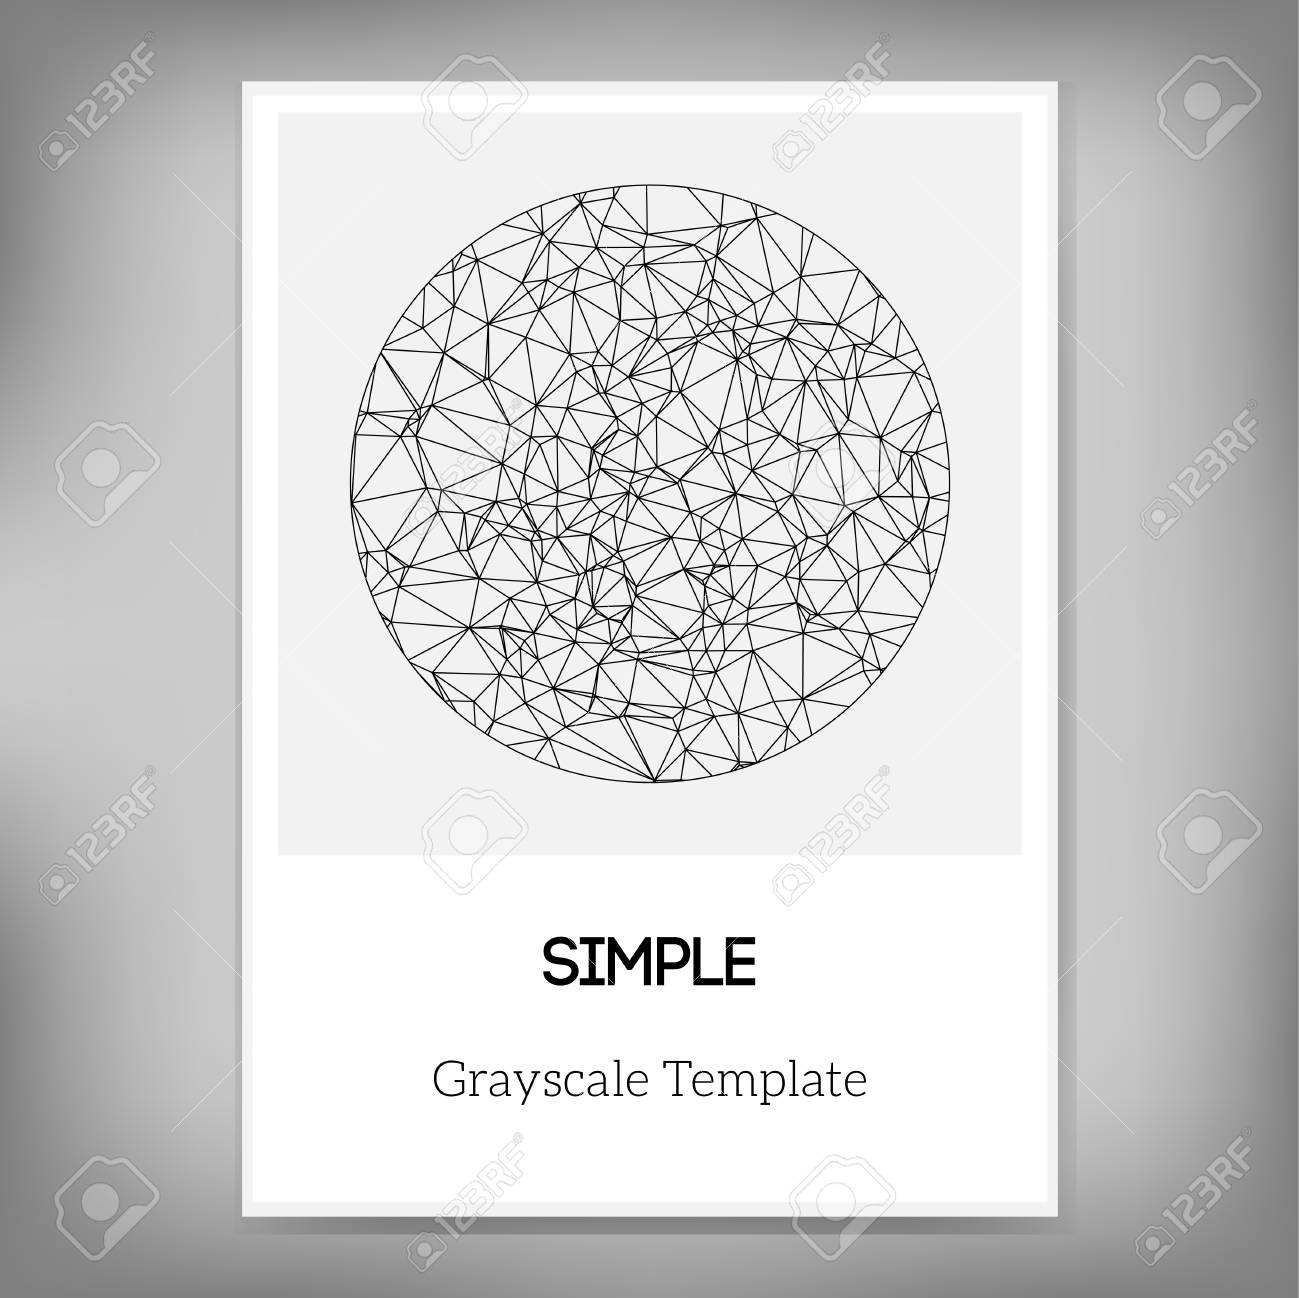 Vector Simple A4 Brochure Template With Abstract Circle In Grayscale ...